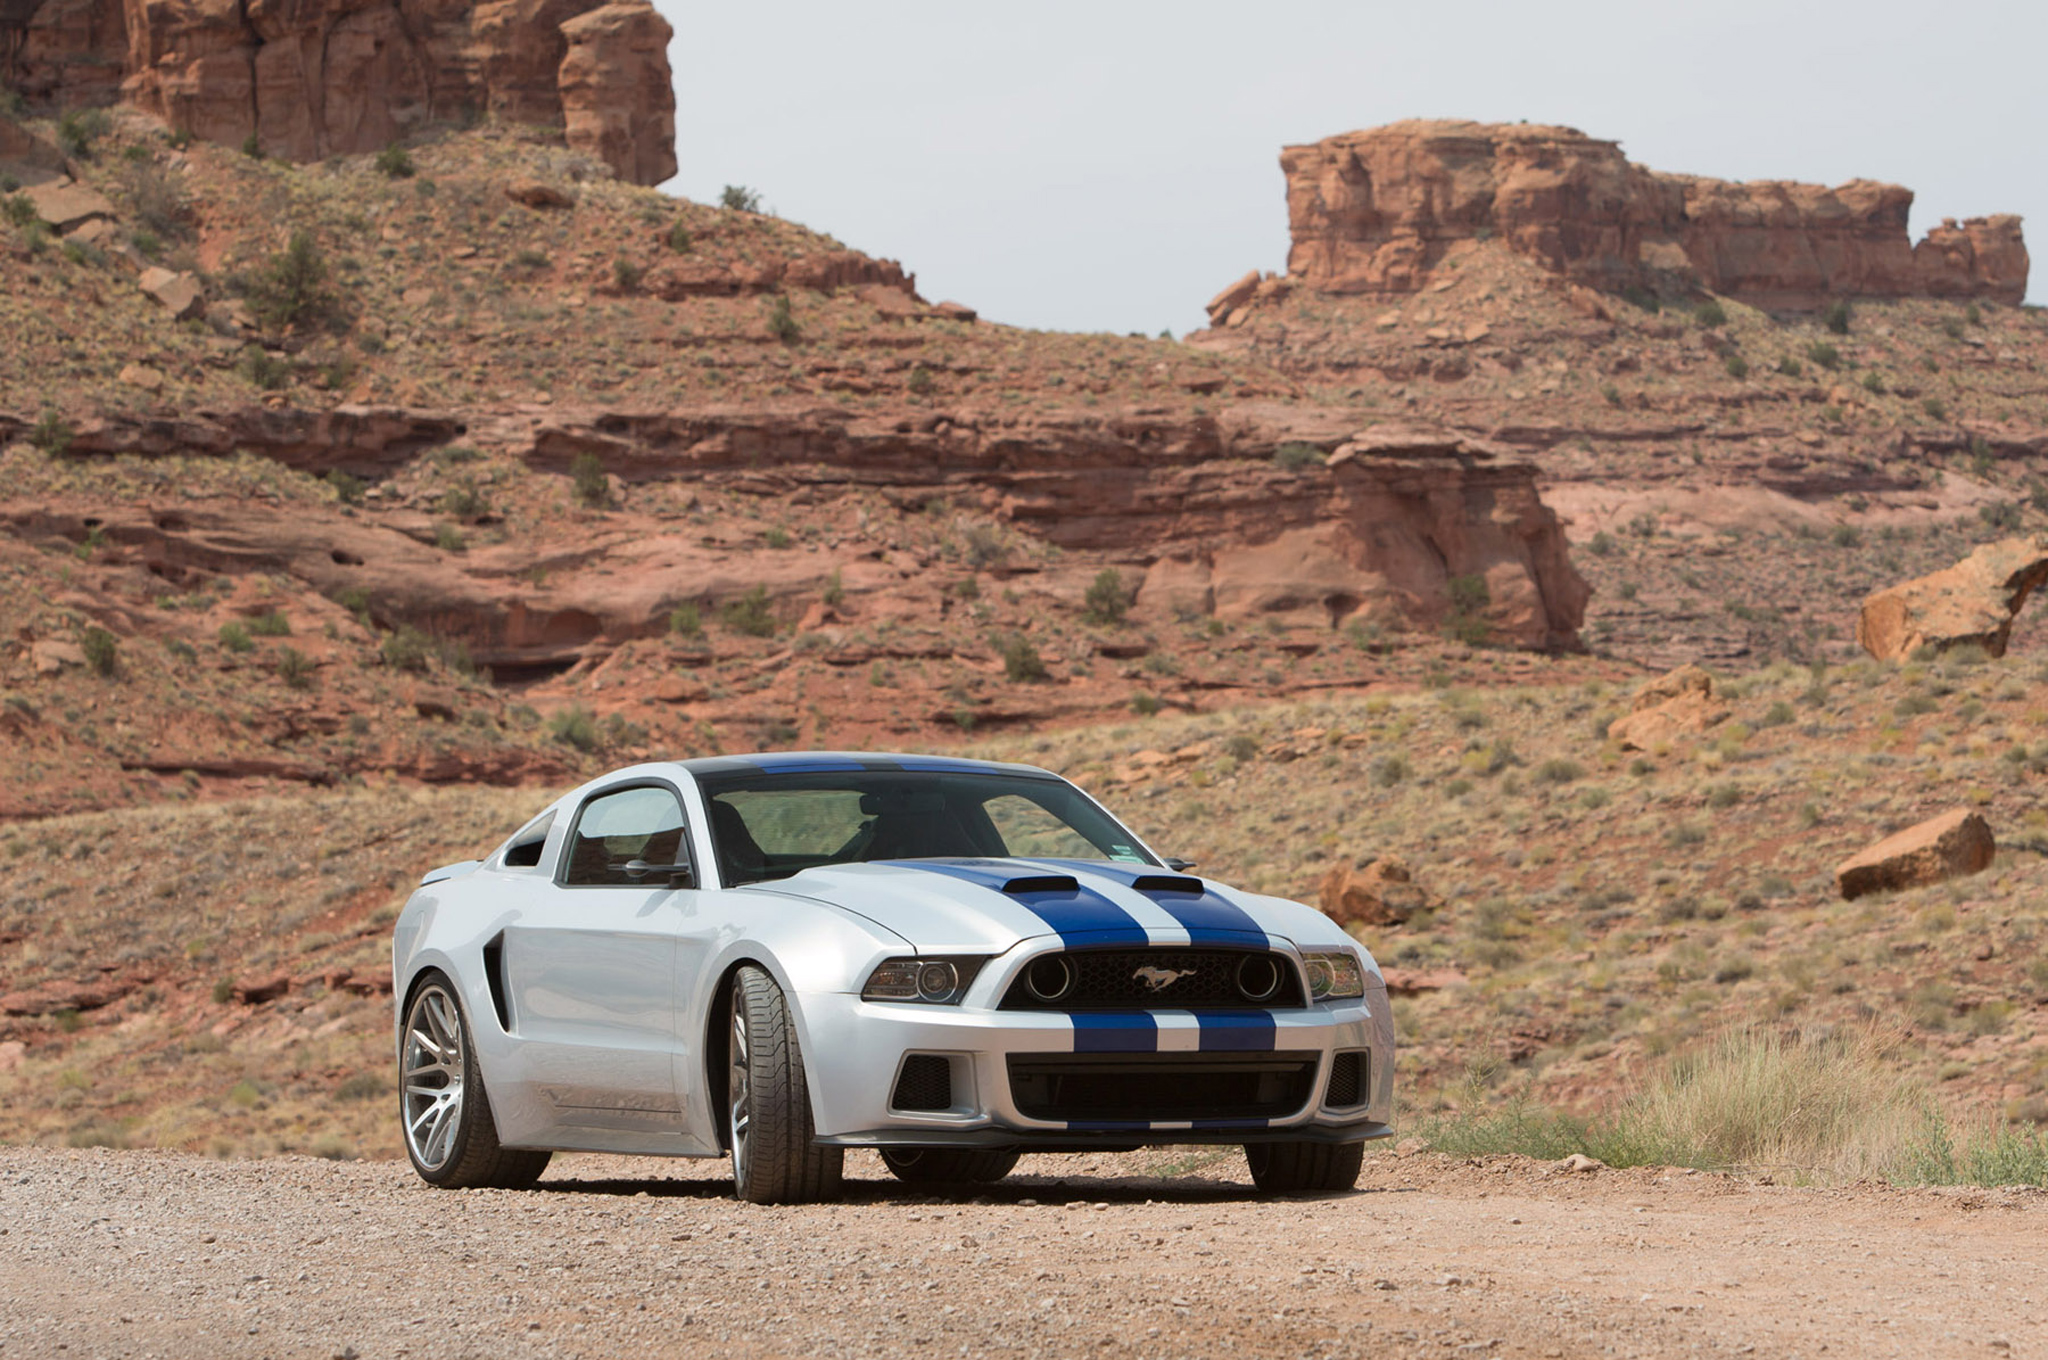 Ford Mustang From Need For Speed Headed To Barrett Jackson Motor